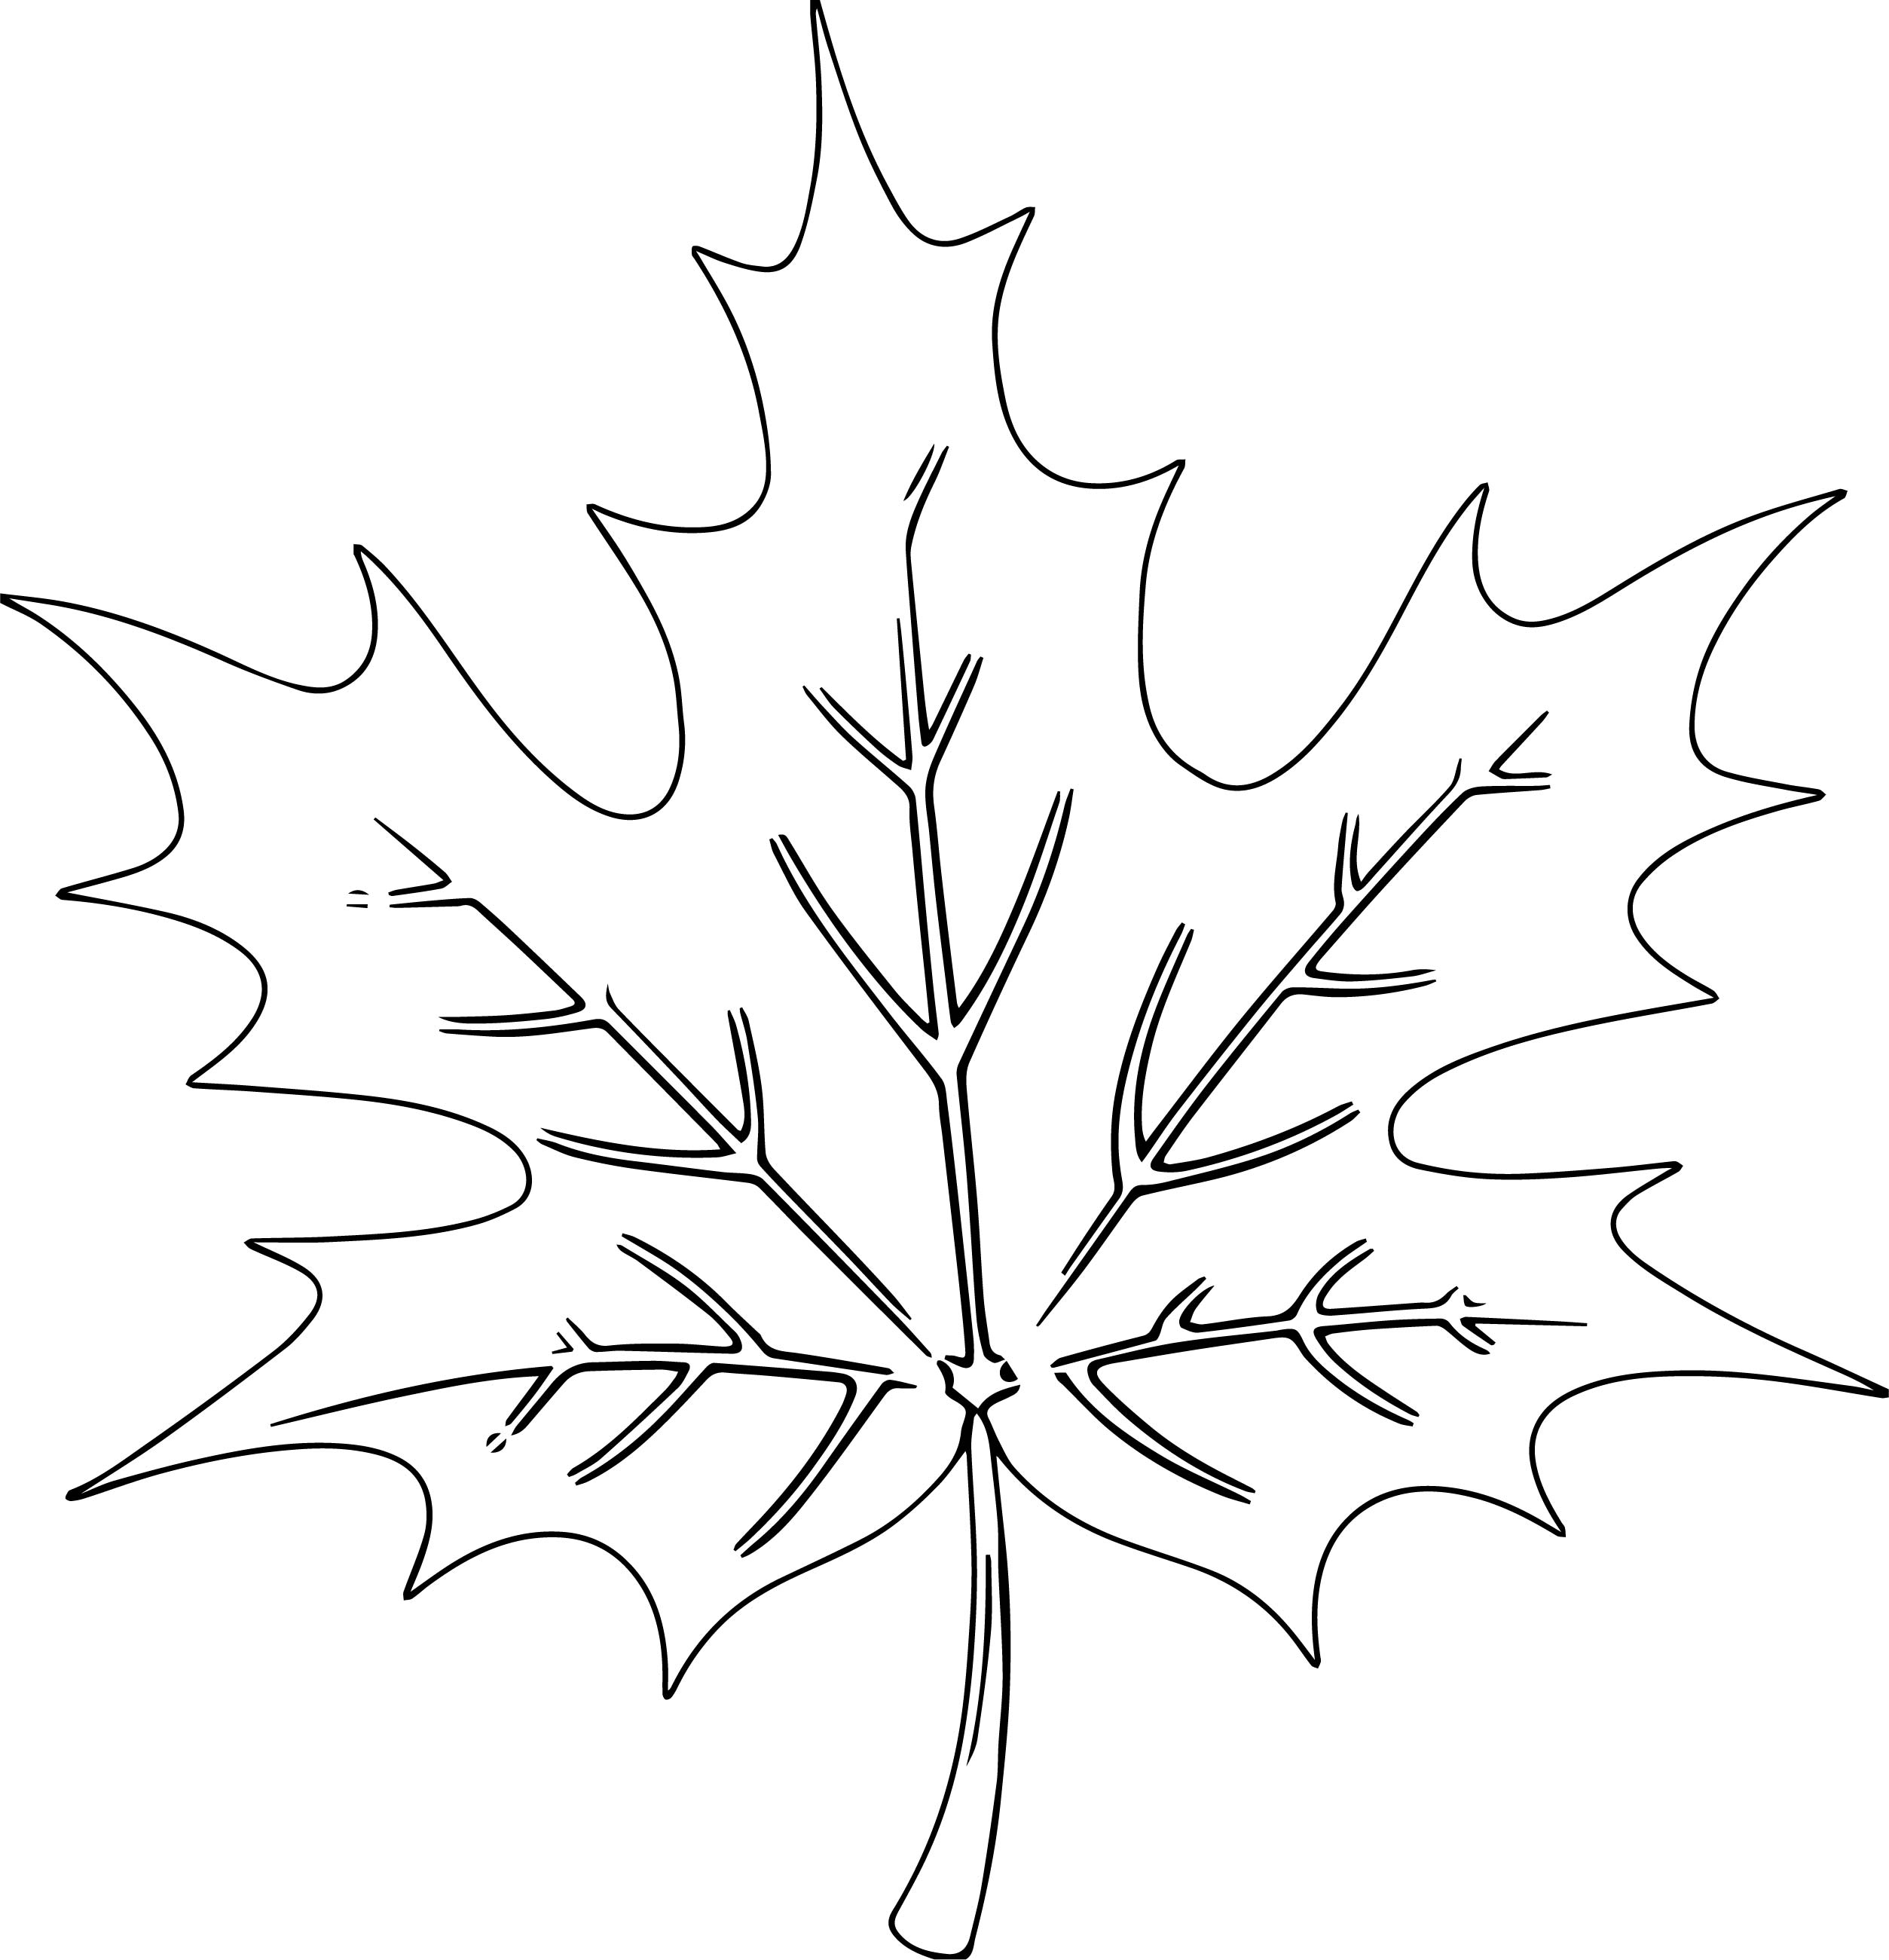 Autumn Scenery Coloring Page